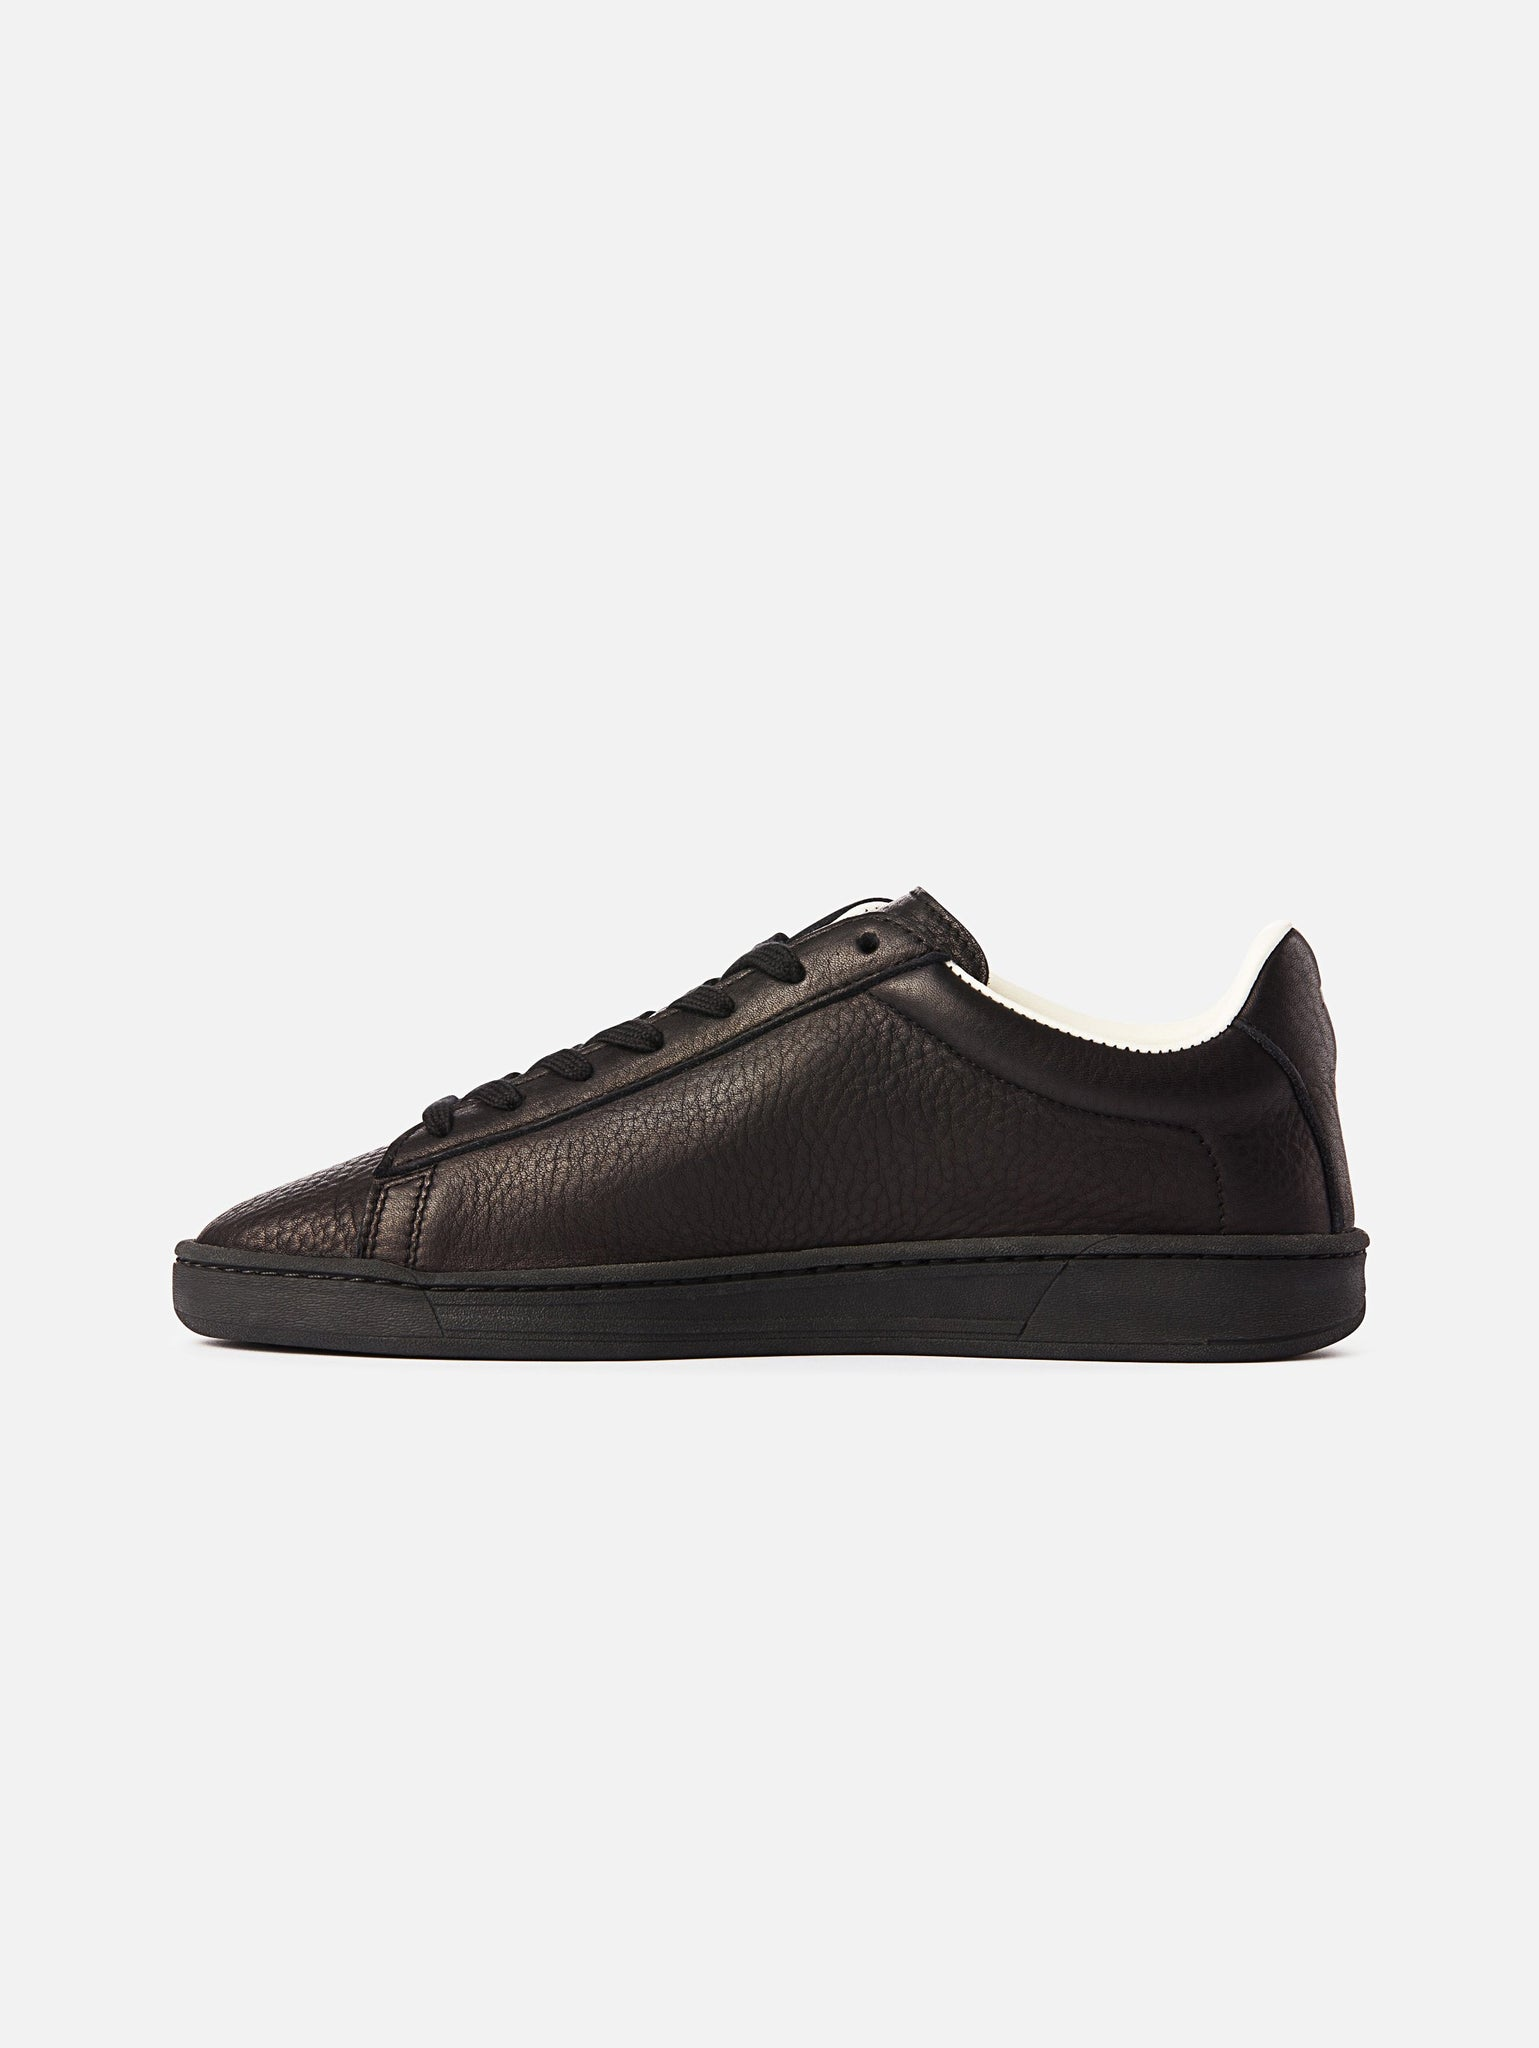 The 1970 - All Black Leather Trainer